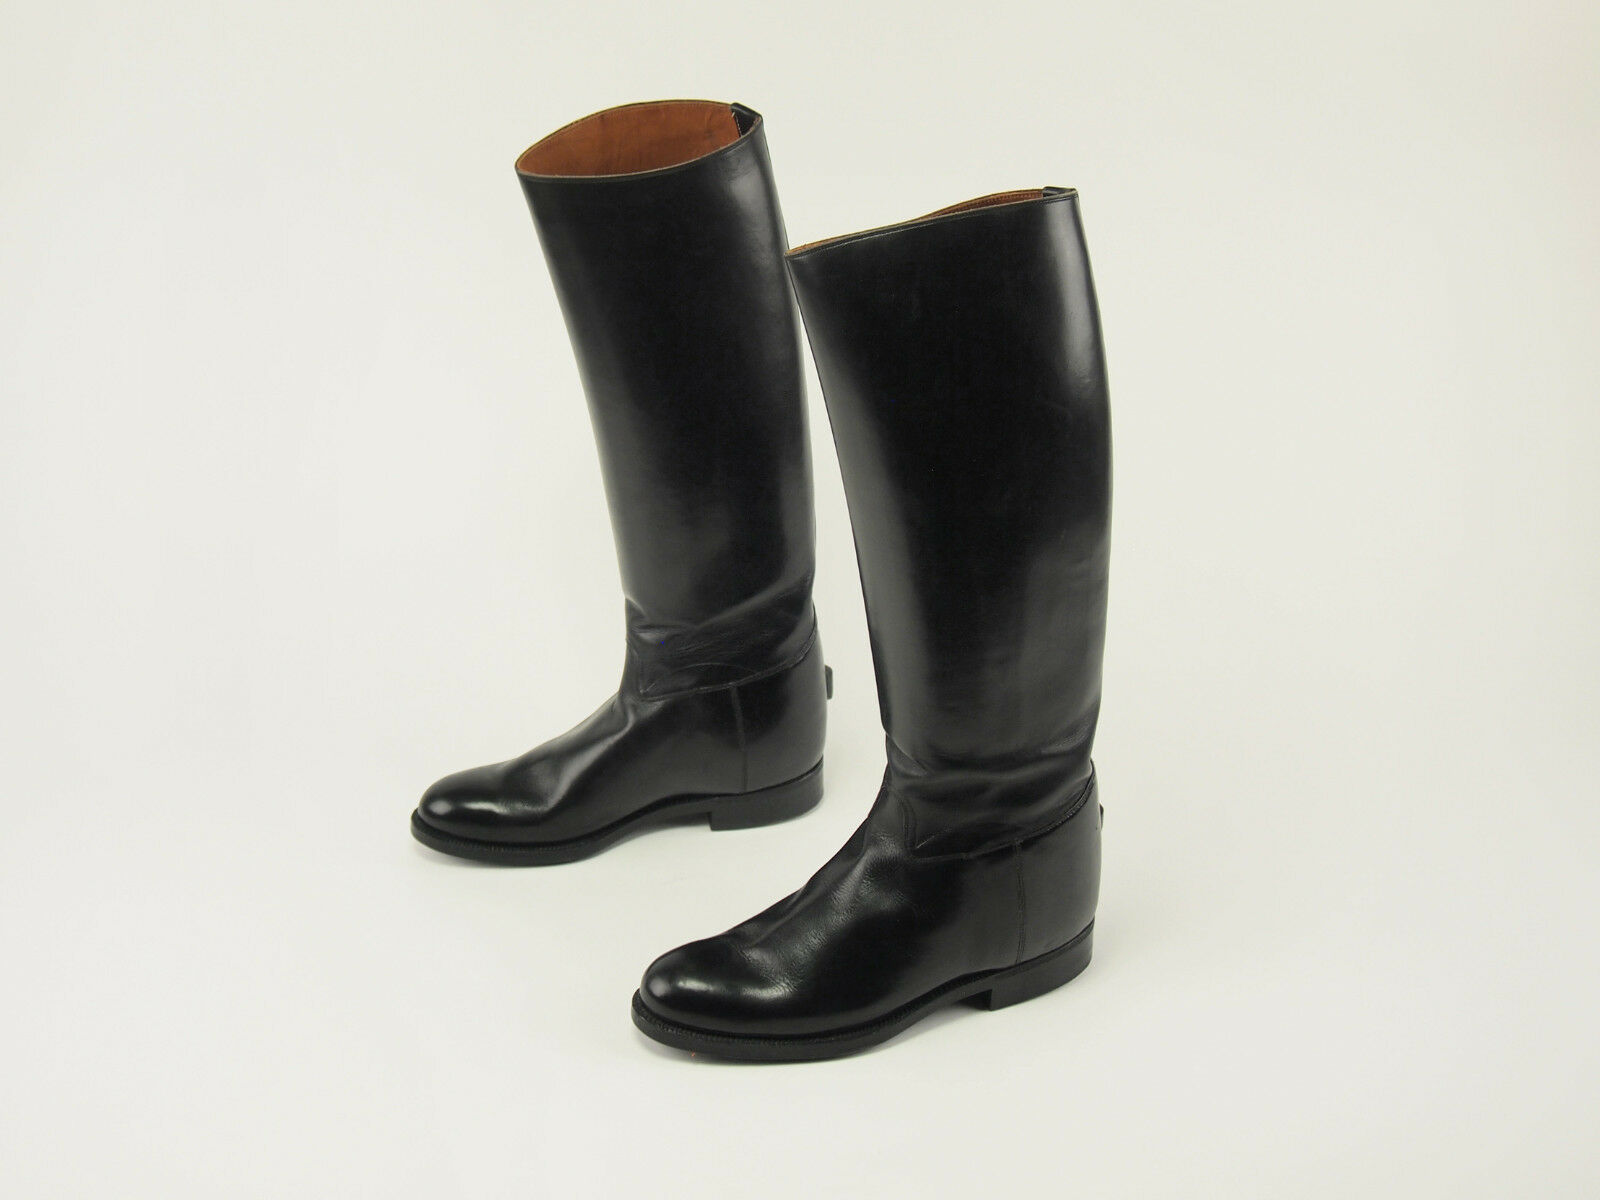 New! FUSE Tokyo Vintage Leather Narrow-calf Equestrian Riding Boots US 6.5